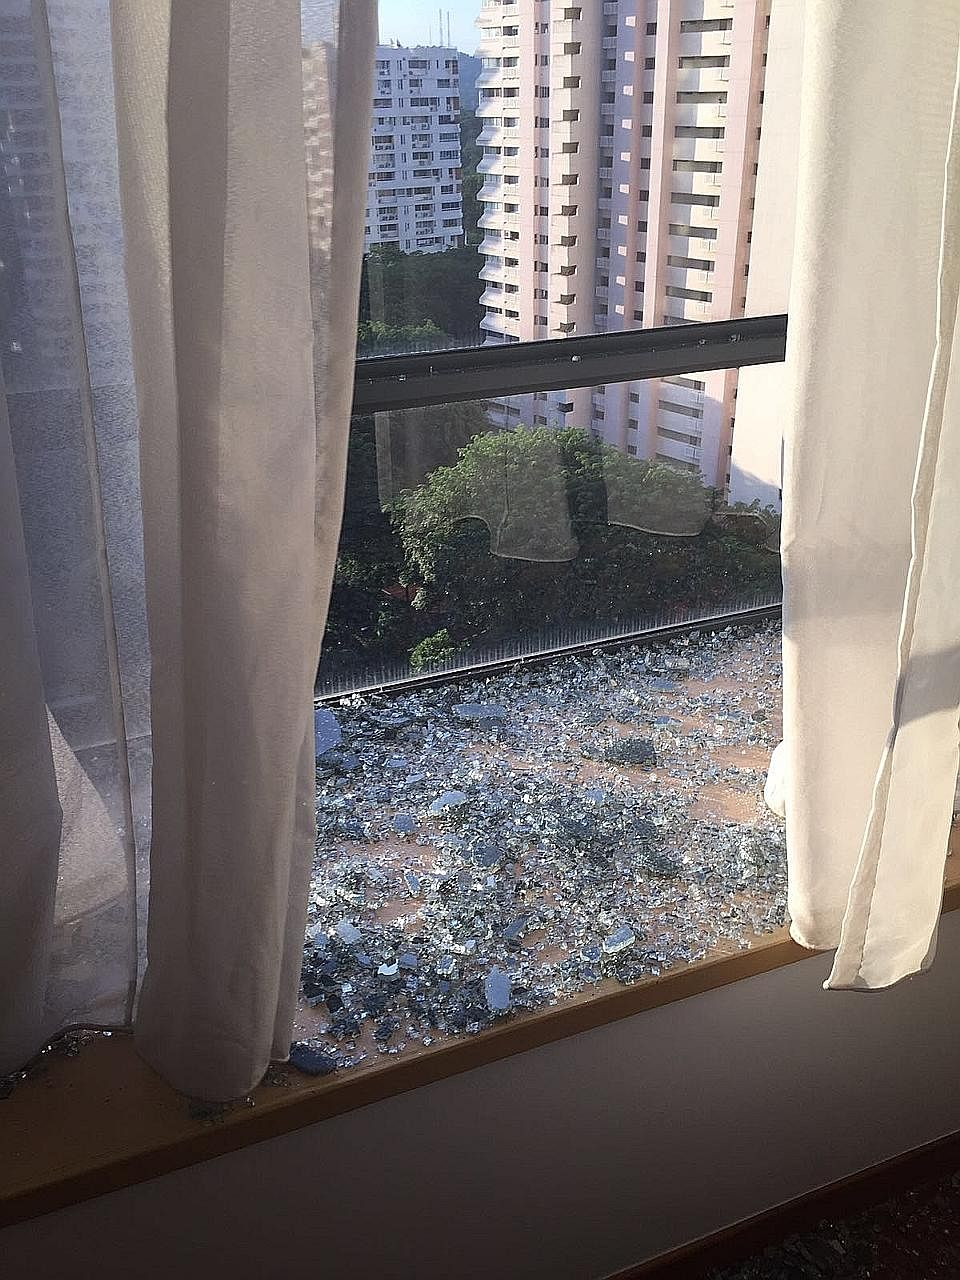 The shattered window at the home of Mr David. Over the past four years, BCA has received an average of 15 reports on glass shattering per year from a total of 25 condos.